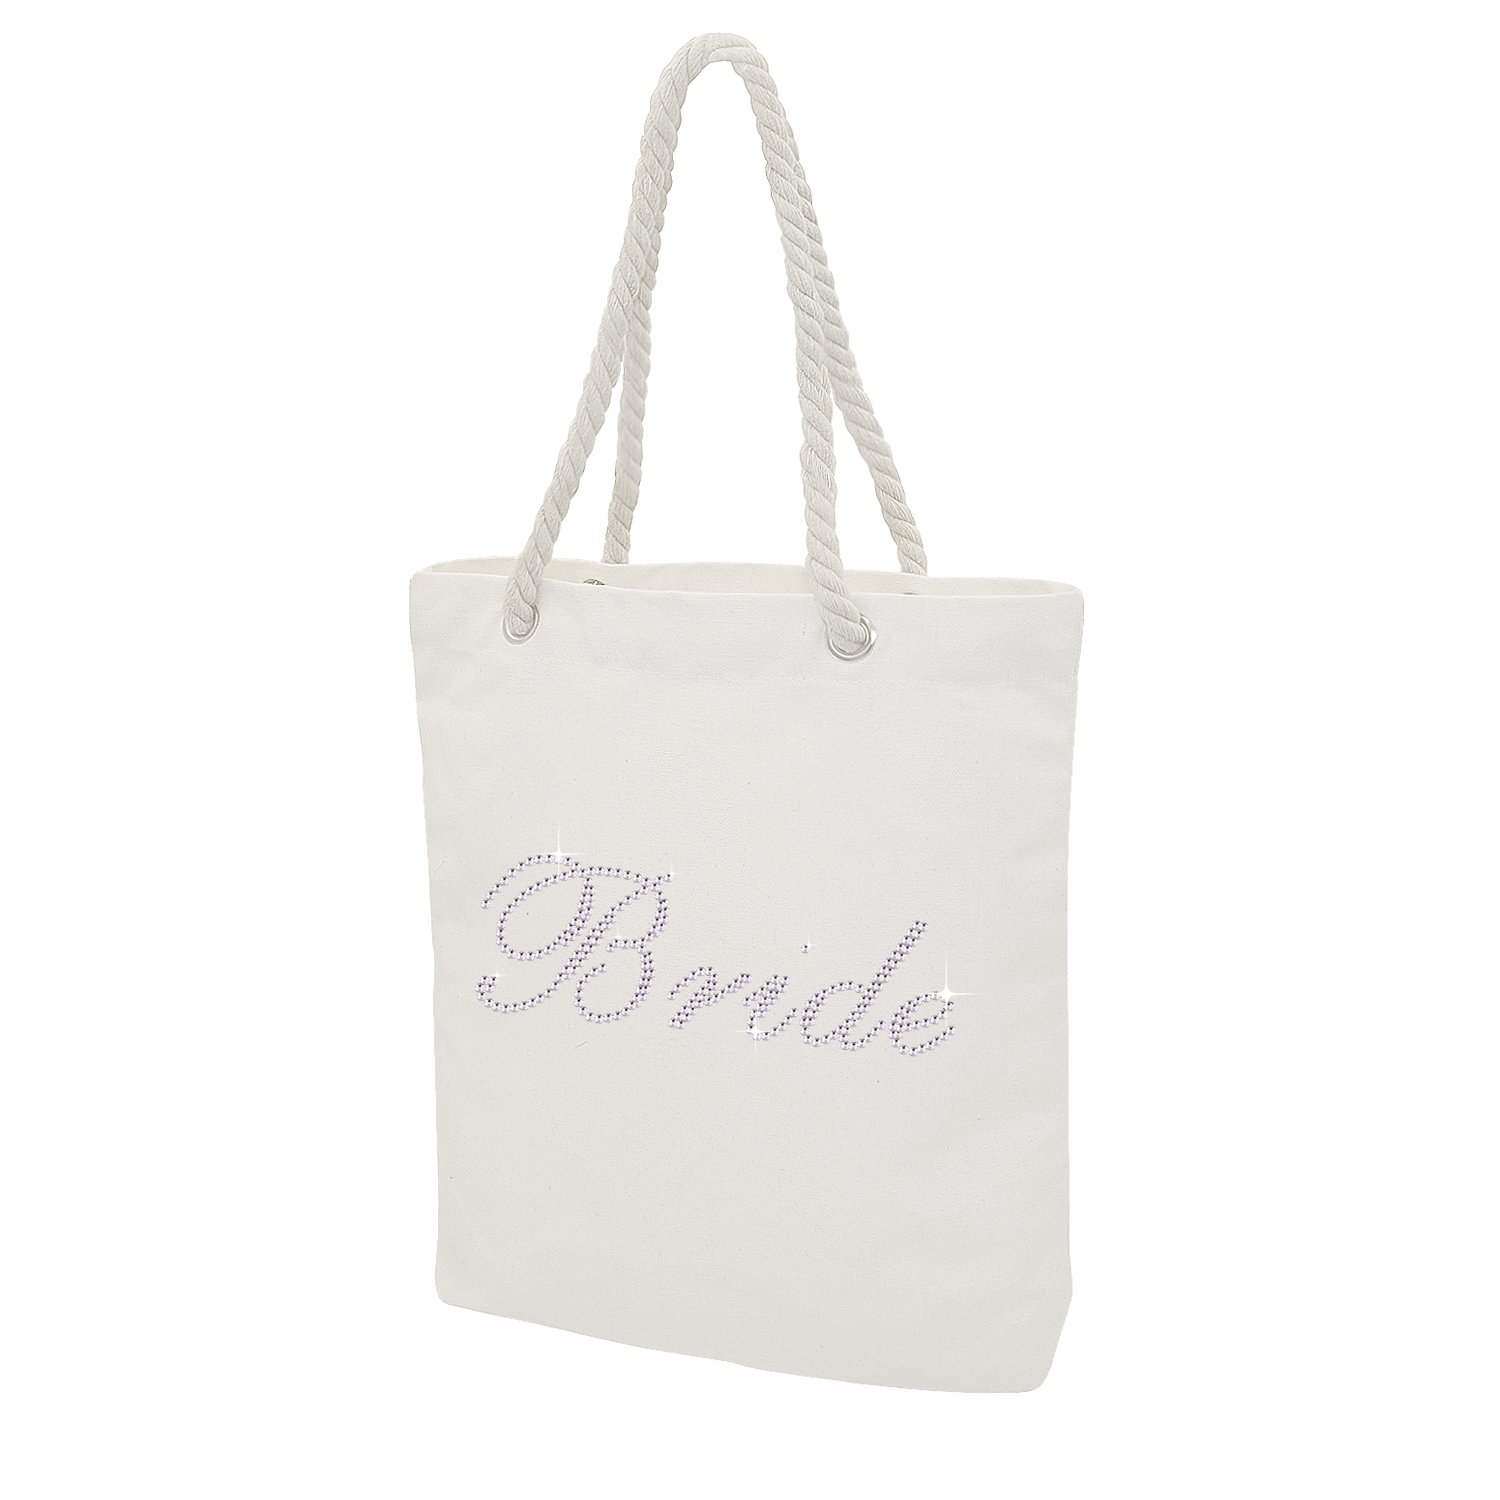 Elehere Custom Tote Bag Crystal Cotton Bags Rhinestone Bridal Shower Bachelorette Party Gift (Crystal - Bride)